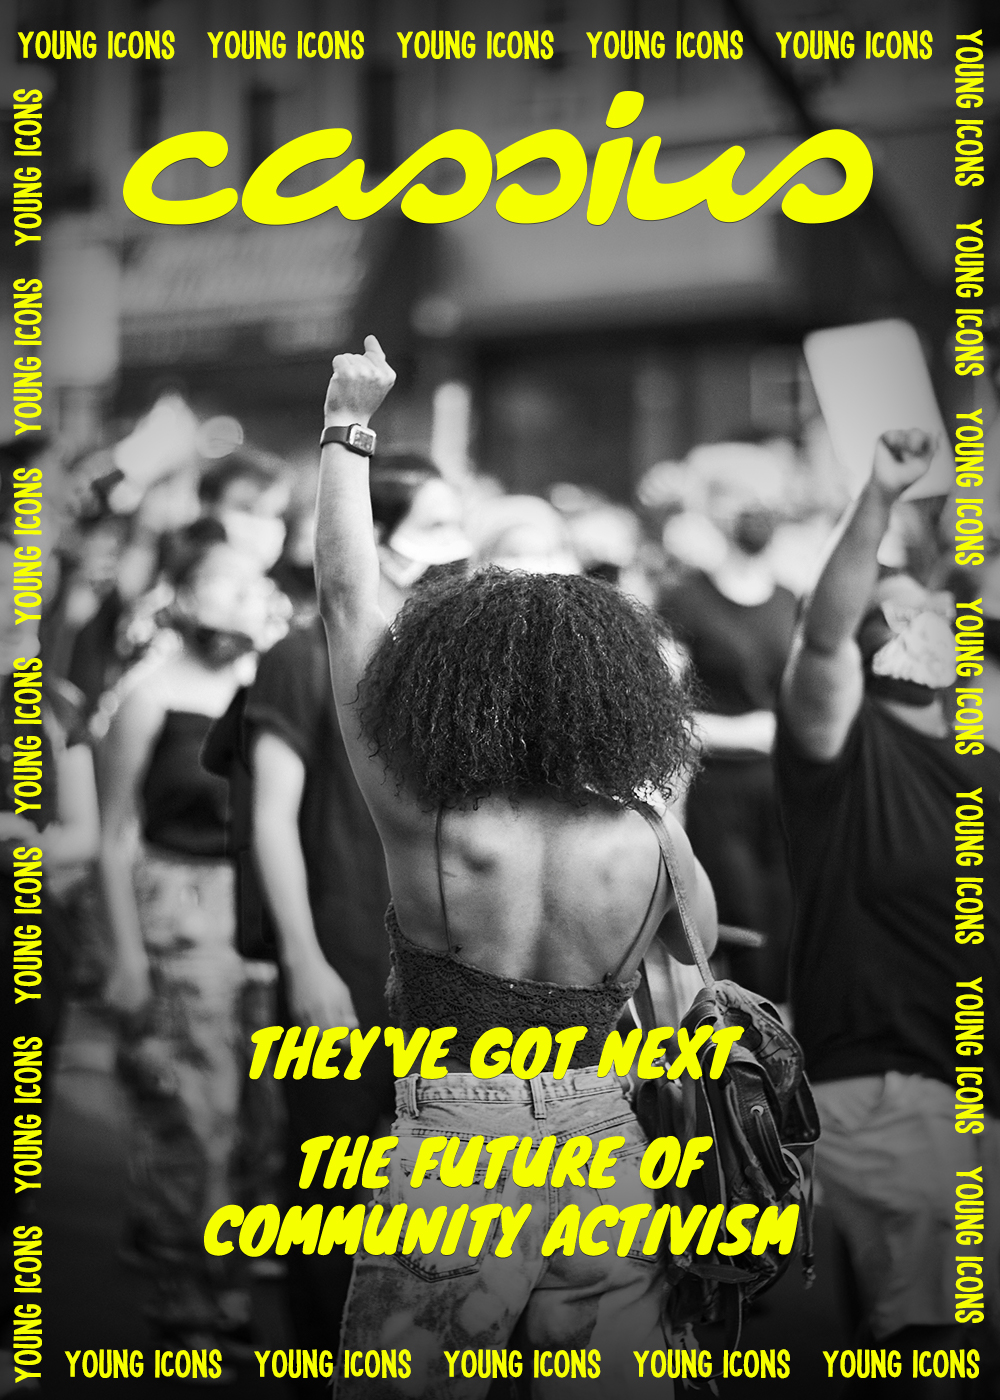 #BossipBHM: 'Cassius' Celebrates Young Icons Influencing The Future Of Community Activism